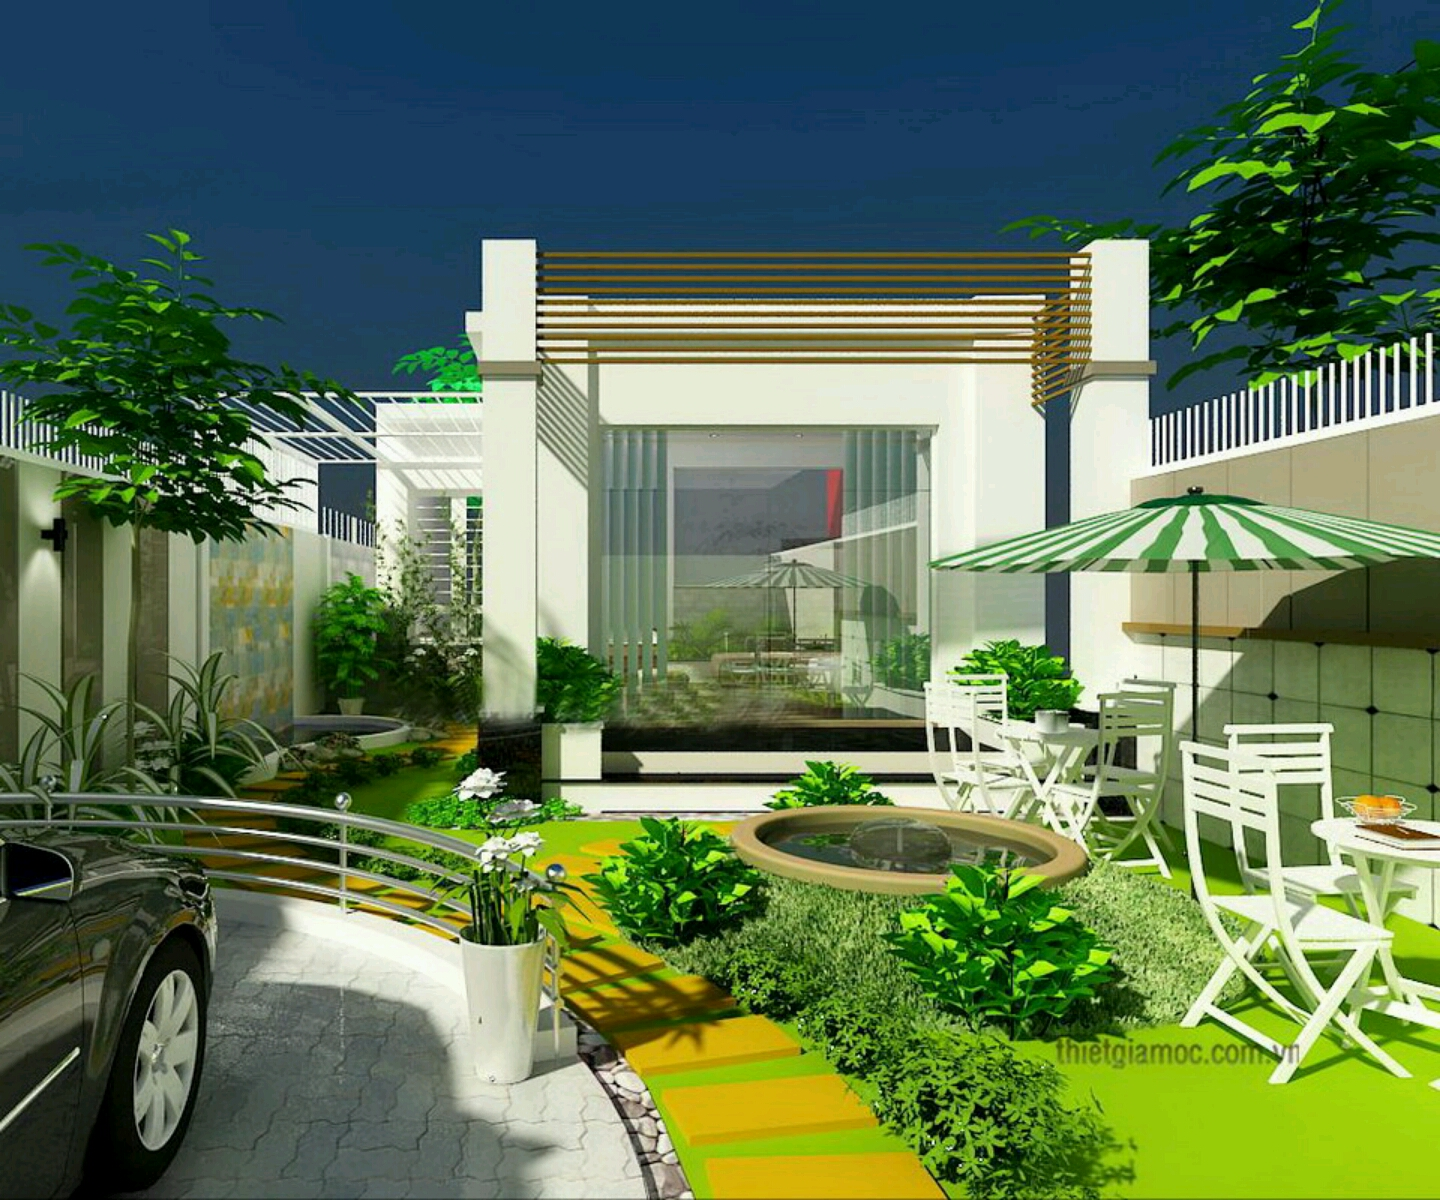 Home Design Ideas Modern: Modern Homes Beautiful Garden Designs Ideas.